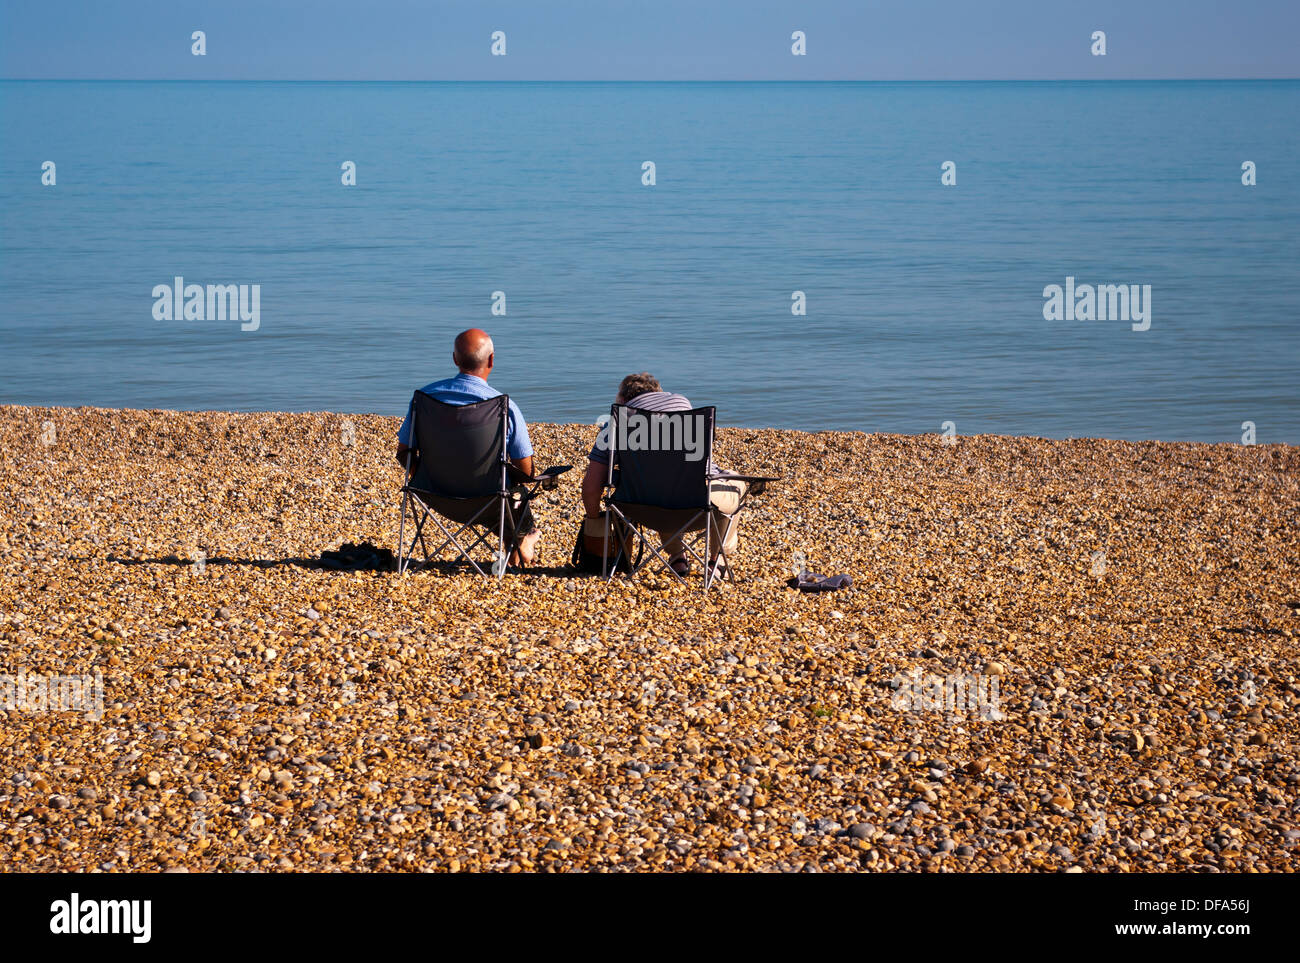 Rear View Of An Elderly Couple Sitting On Beach Chairs Looking Out To Sea Stock Photo